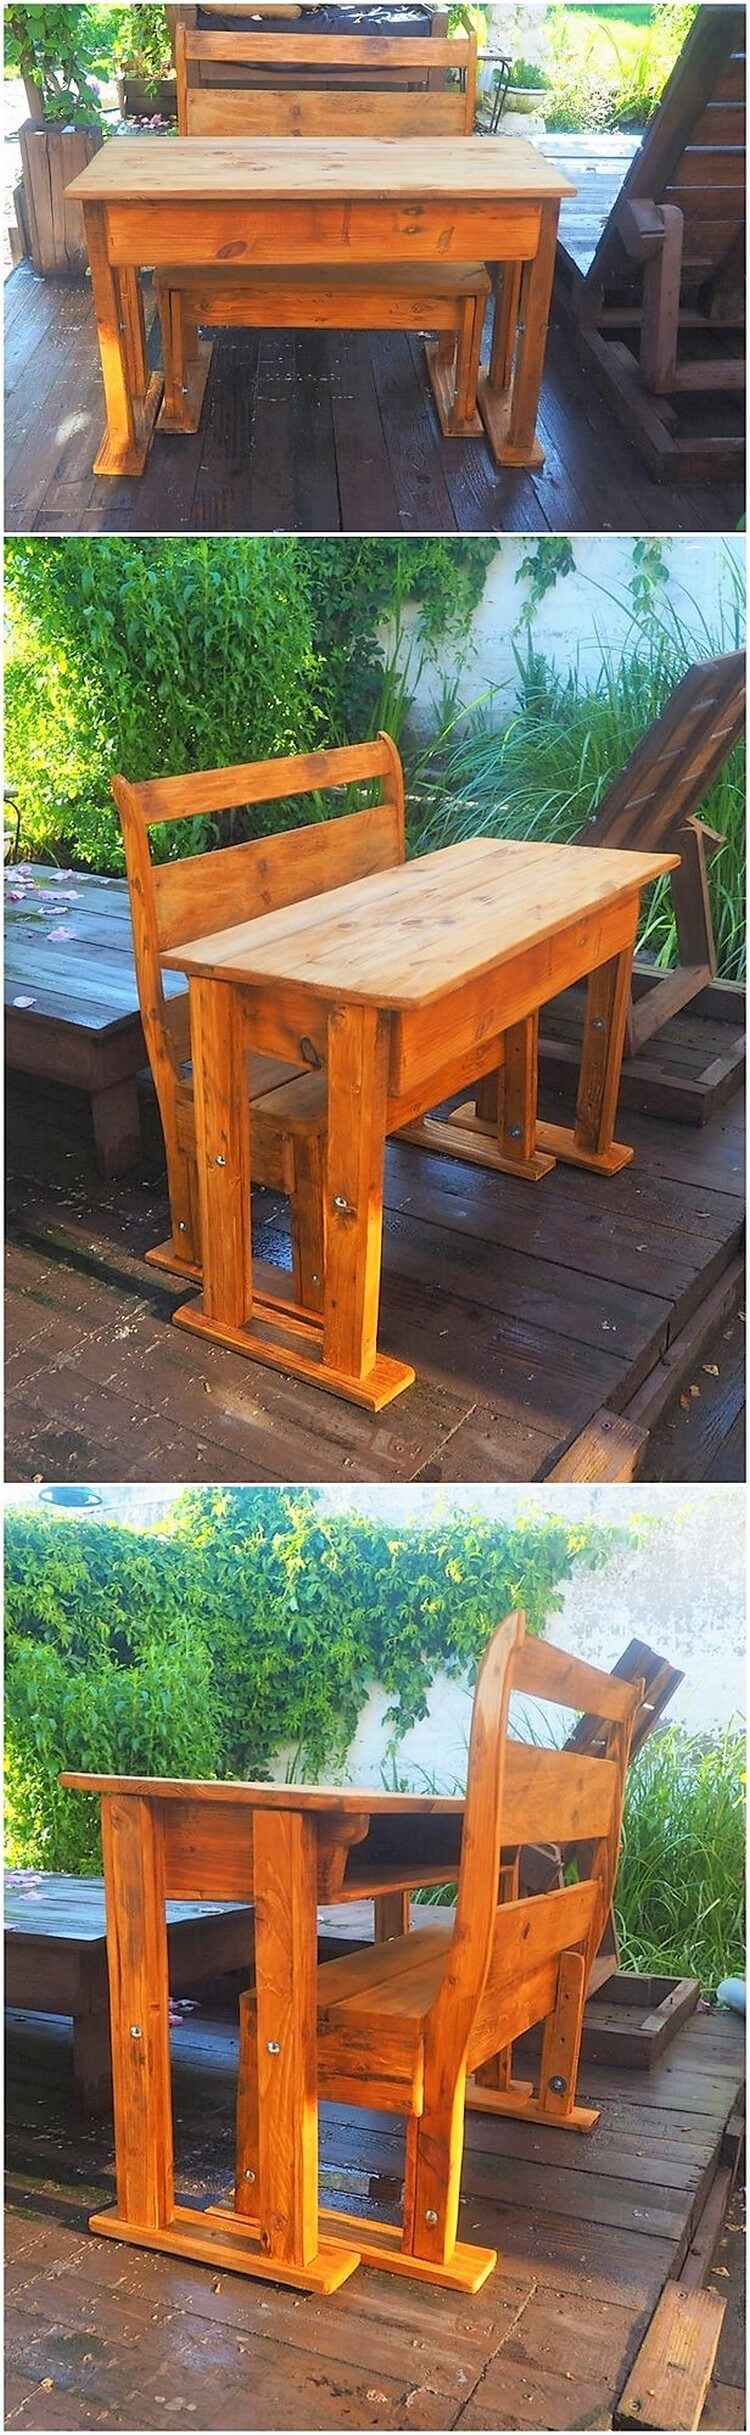 Wooden Pallet Bench and Table